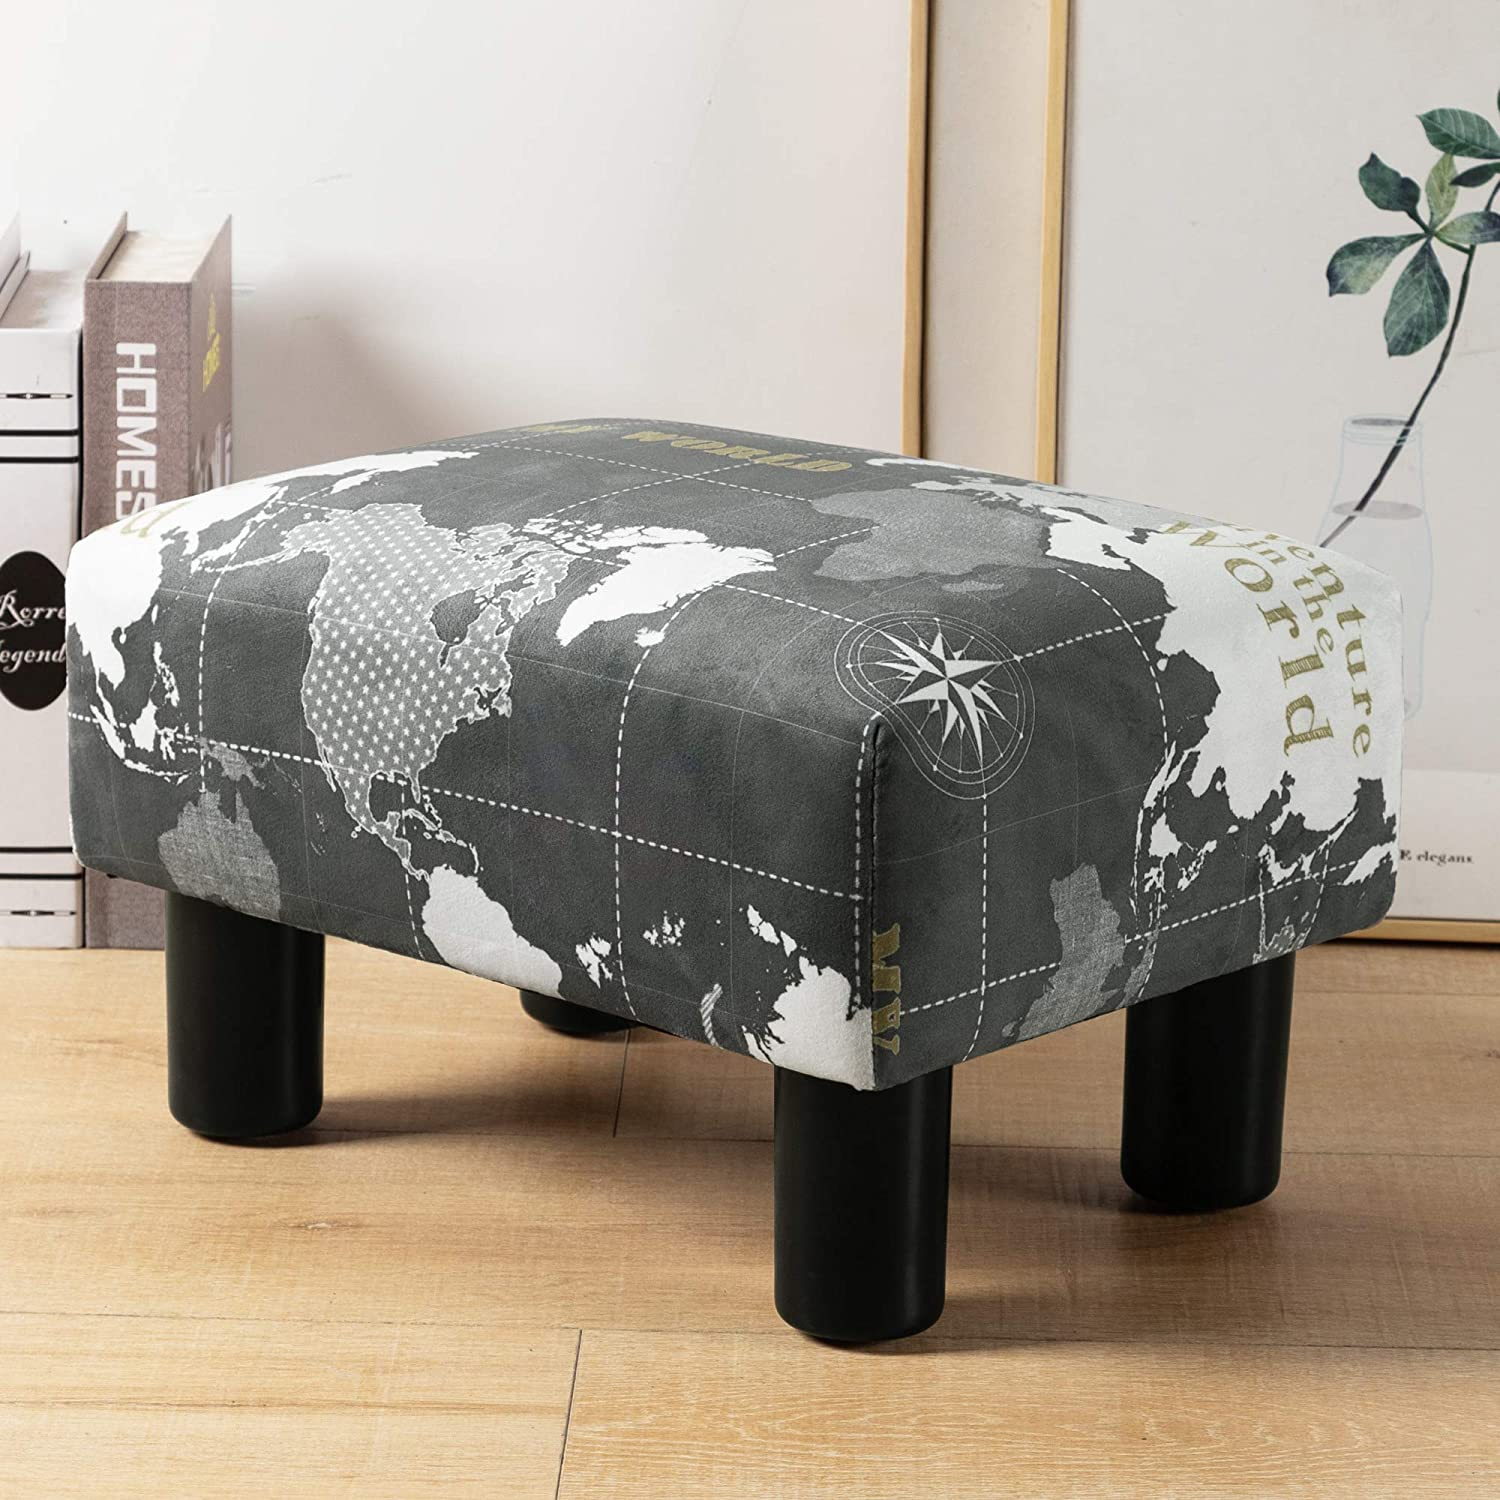 Small Rectangle Foot Stool, Gray World Map Footrest Small Ottoman Stool with Non-Skid Plastic Legs, Modern Rectangle Footstools Small Step Stool Ottoman for Couch, Desk, Office, Living Room, Dogs